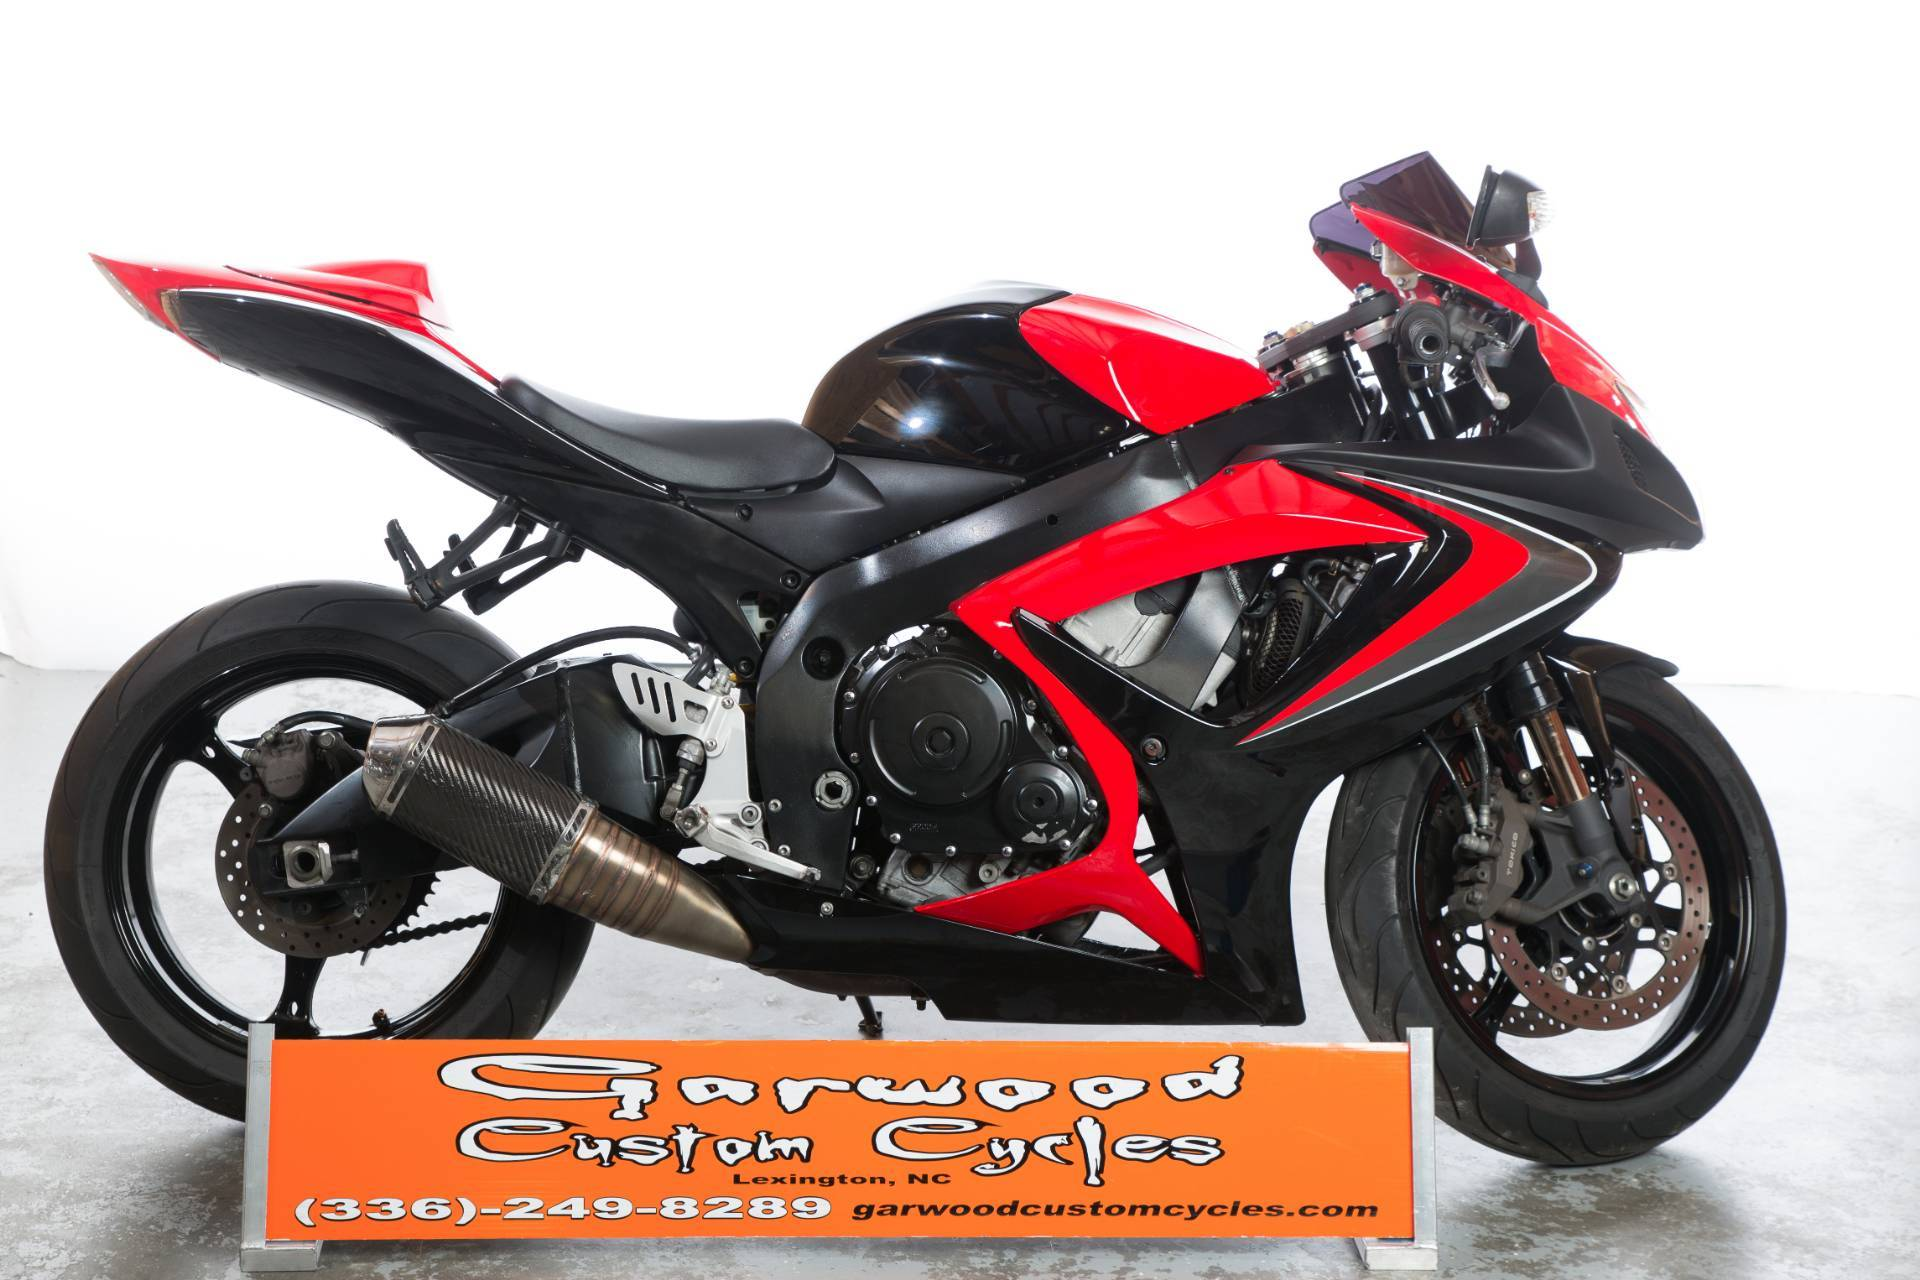 Used 2006 Suzuki GSXR600 Motorcycles in Lexington, NC | Stock Number ...